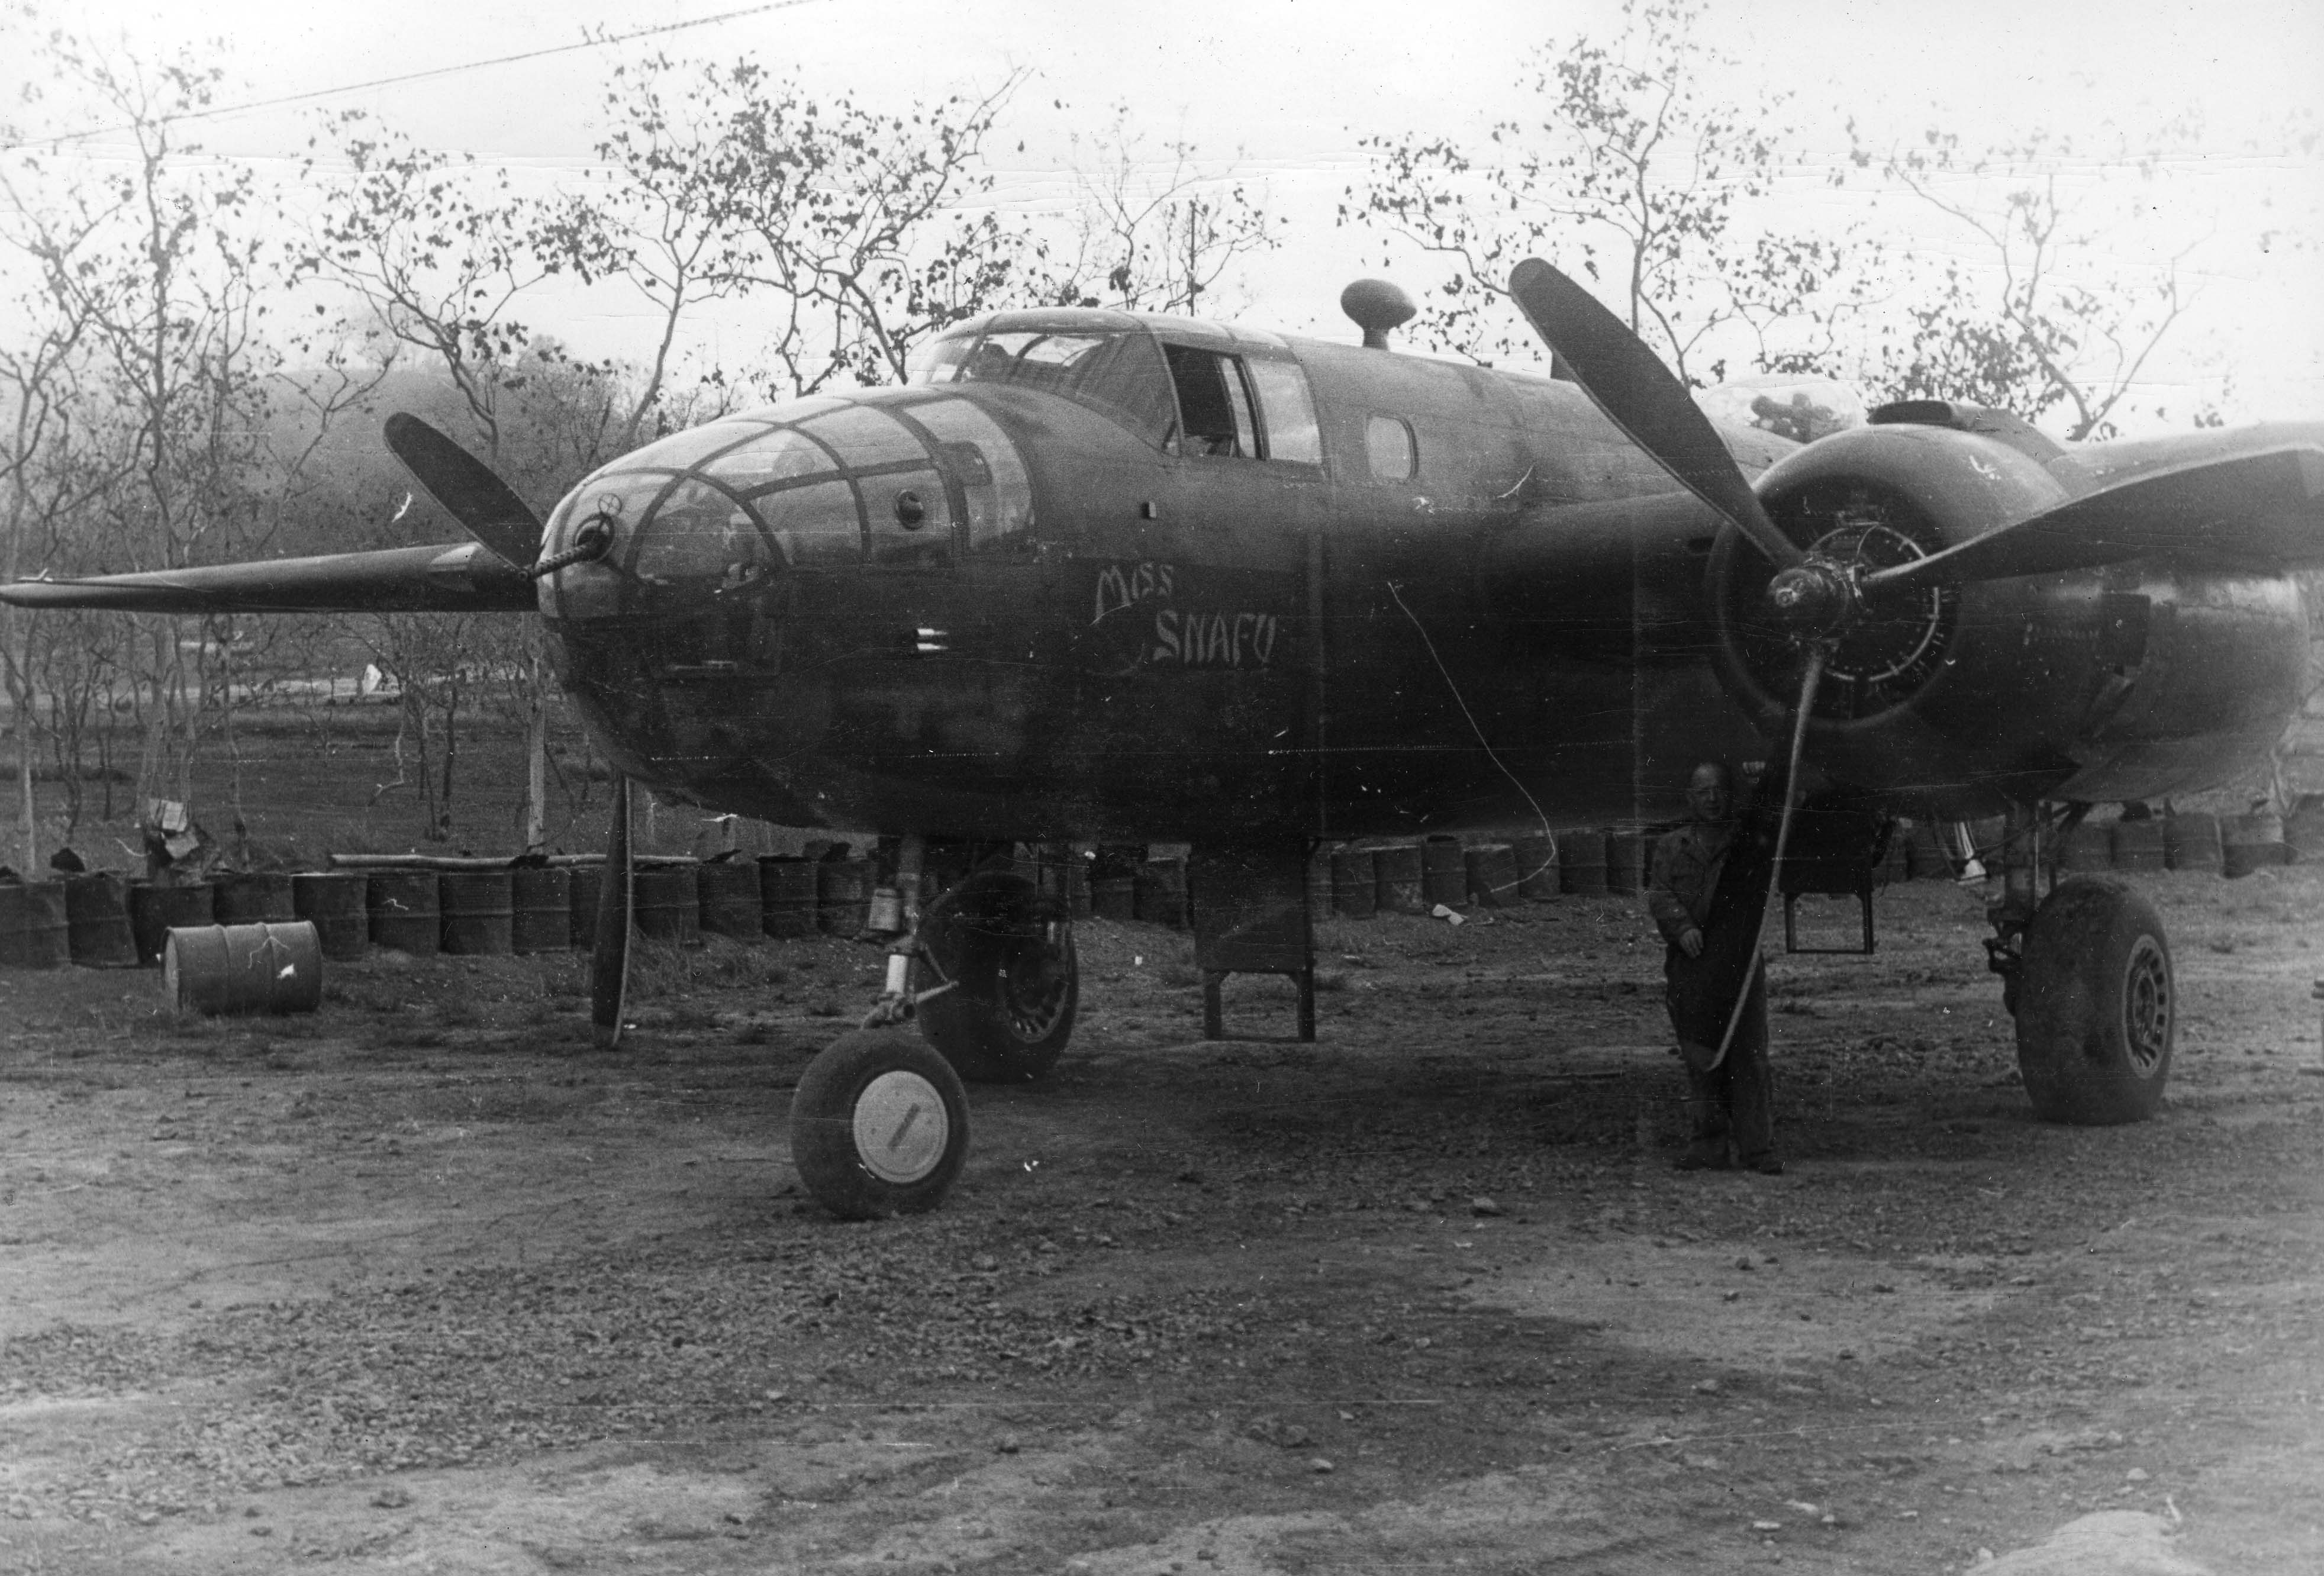 Miss Snafu - B25 - 3rd Bomb Group - 90th Bomb Squadron - Serial #41-12487